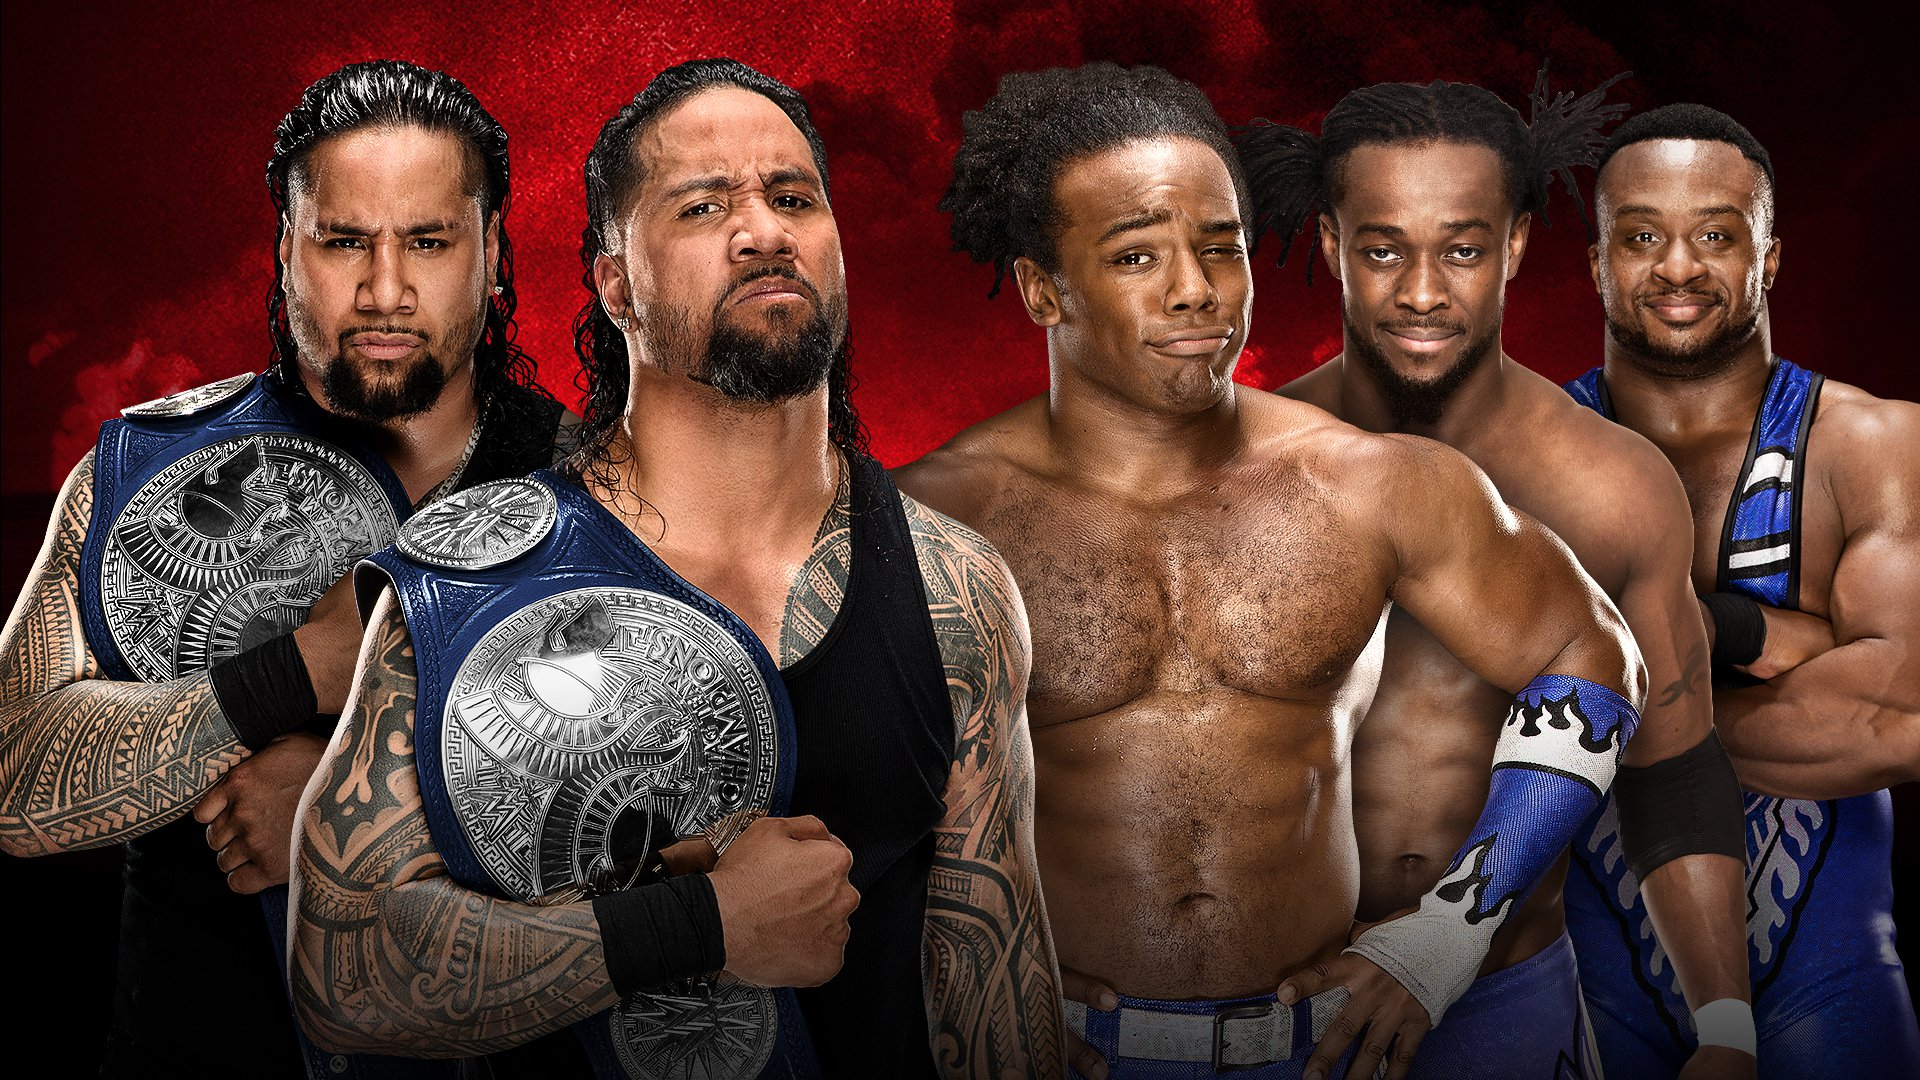 WWE Battleground 2017: The Usos vs. The New Day